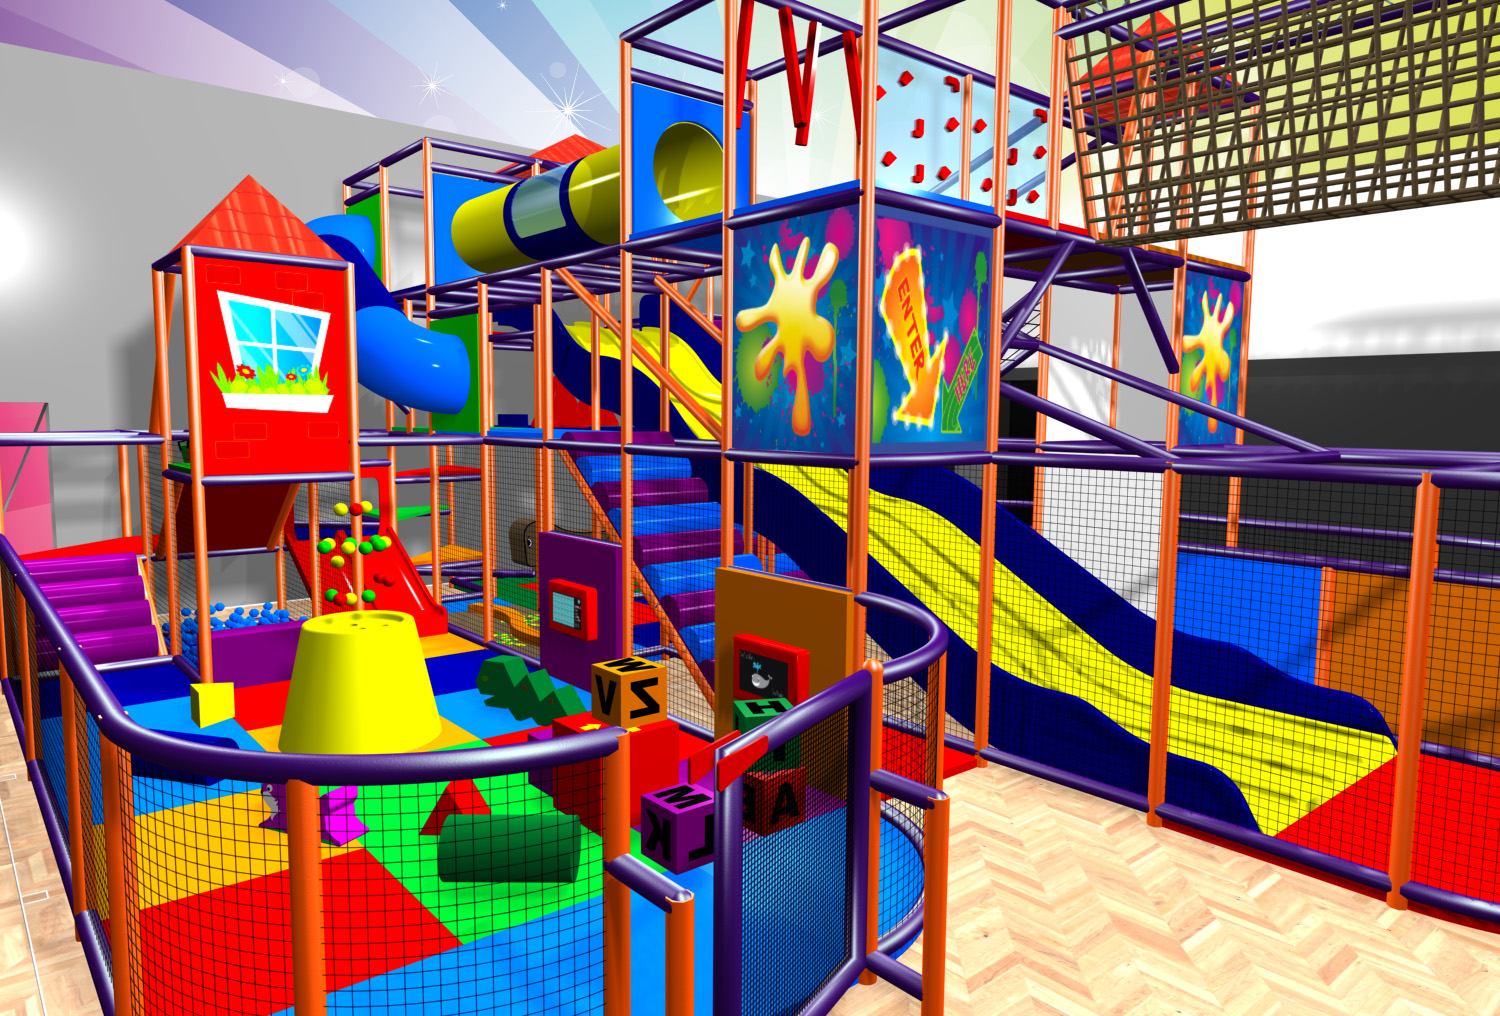 Play Free Restaurant Games